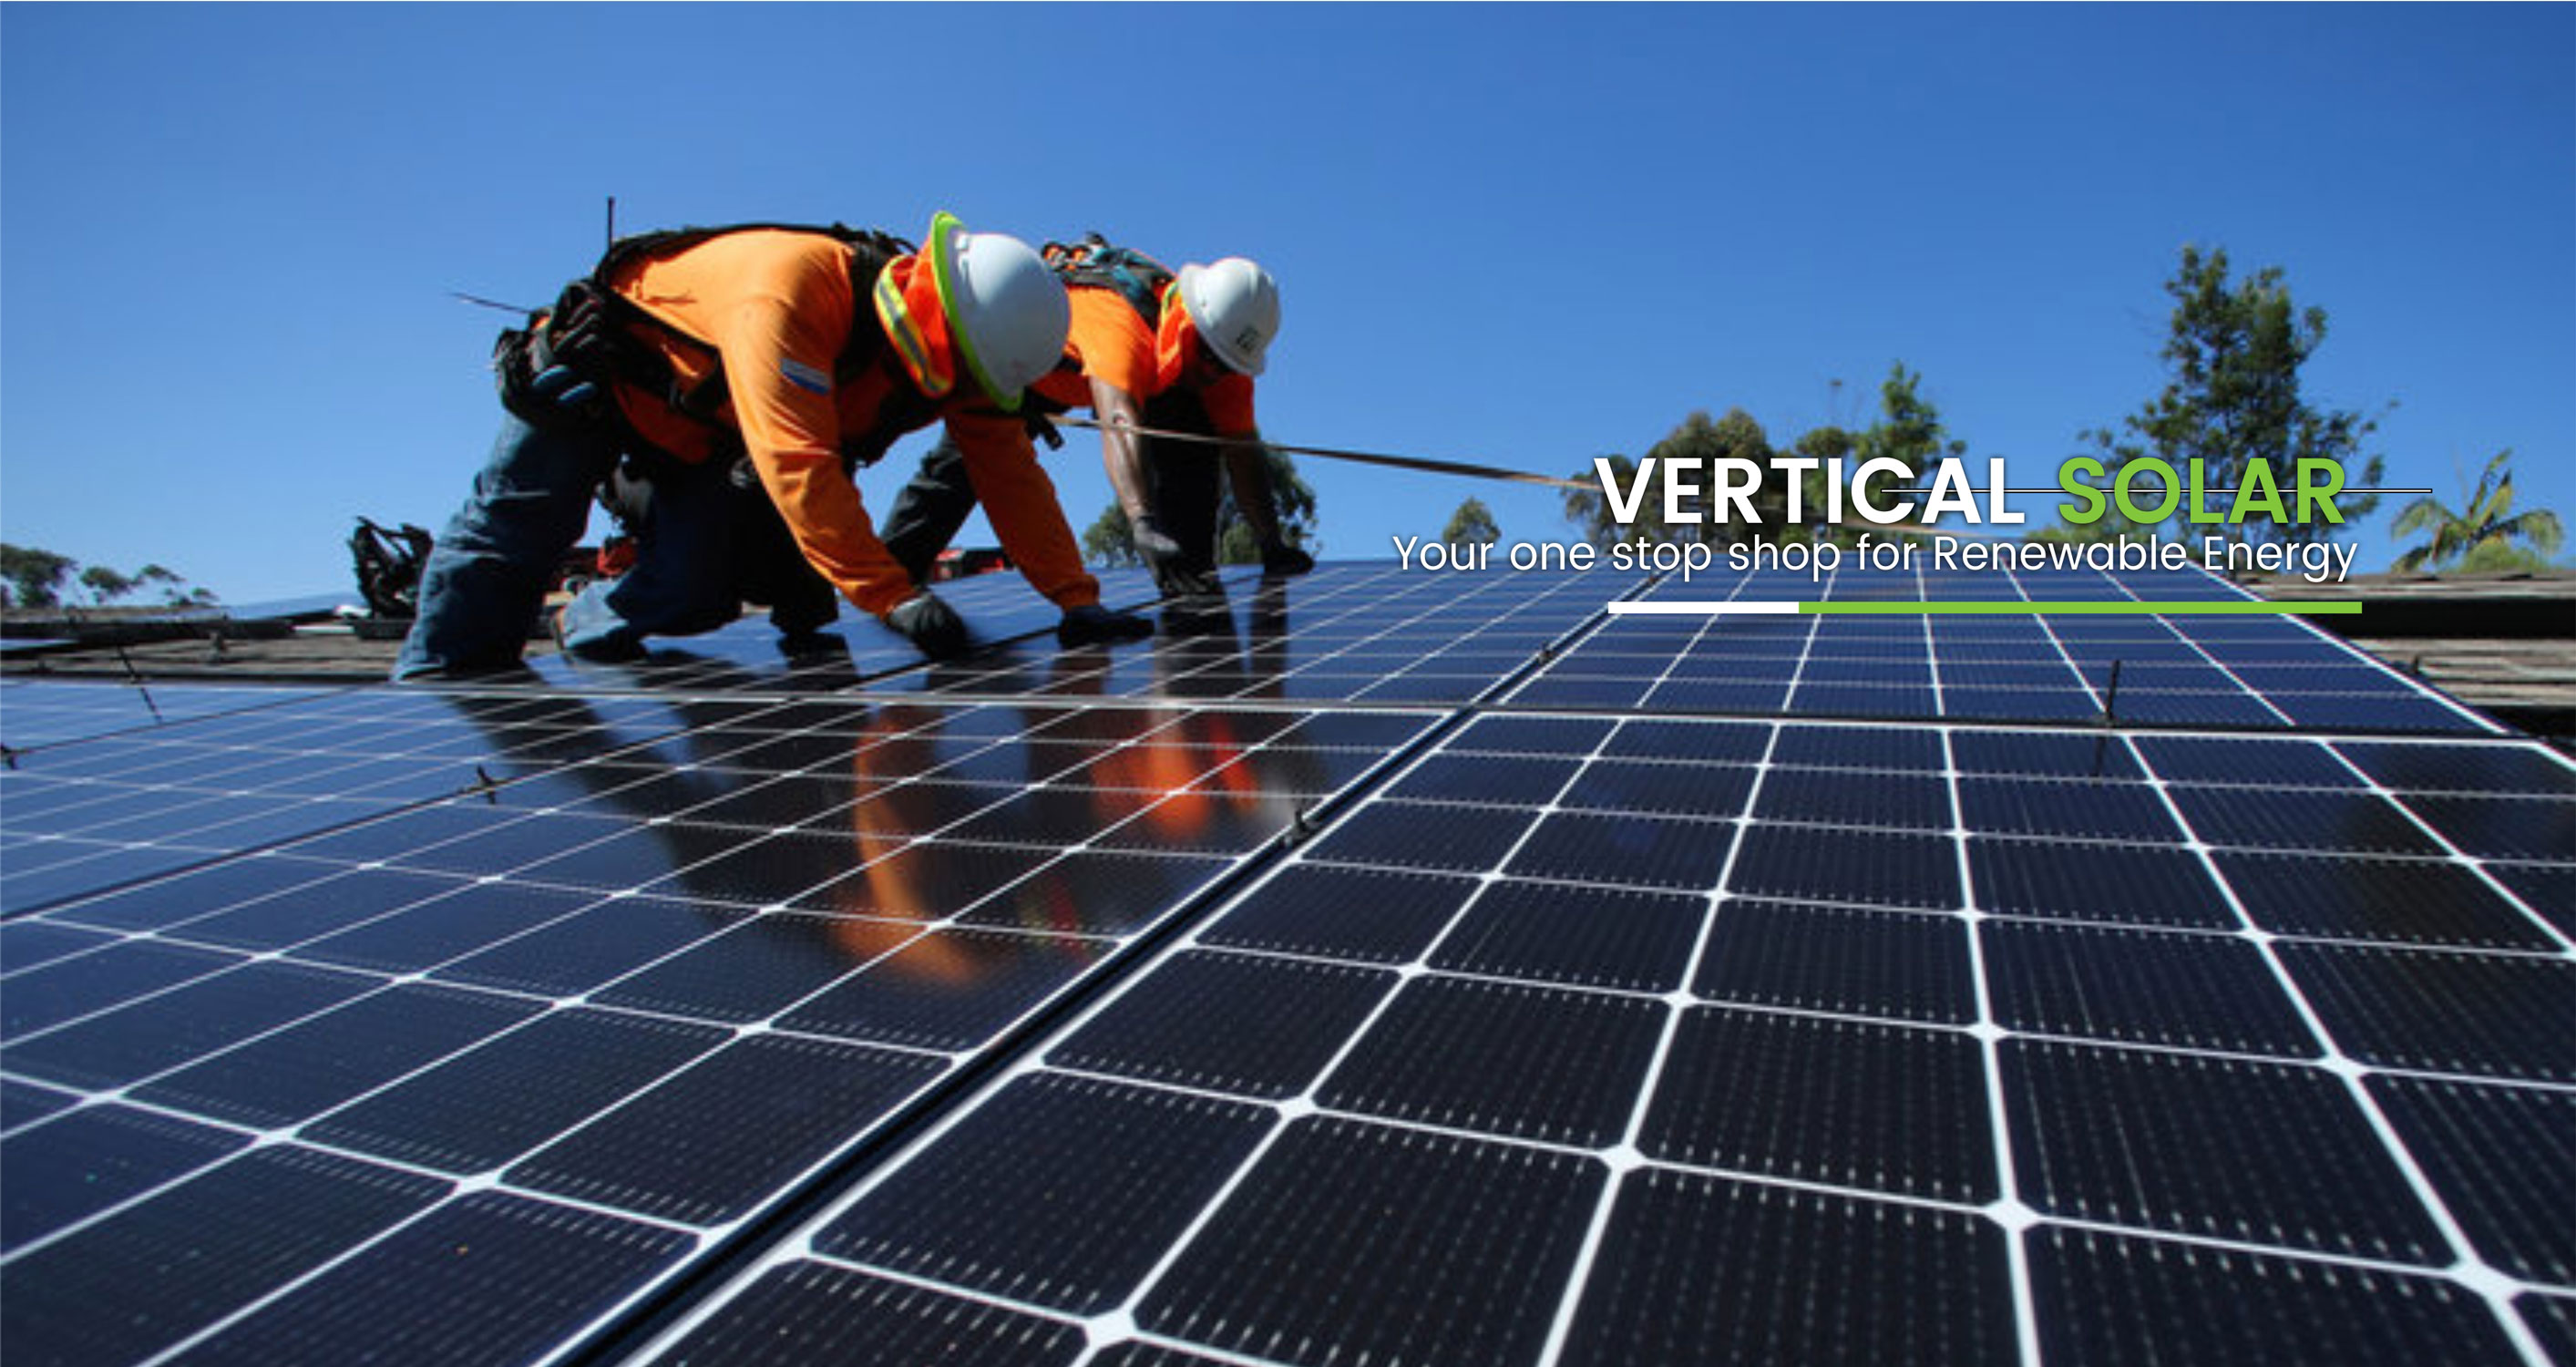 Vertical Solar ...your one stop shop for renewable energy